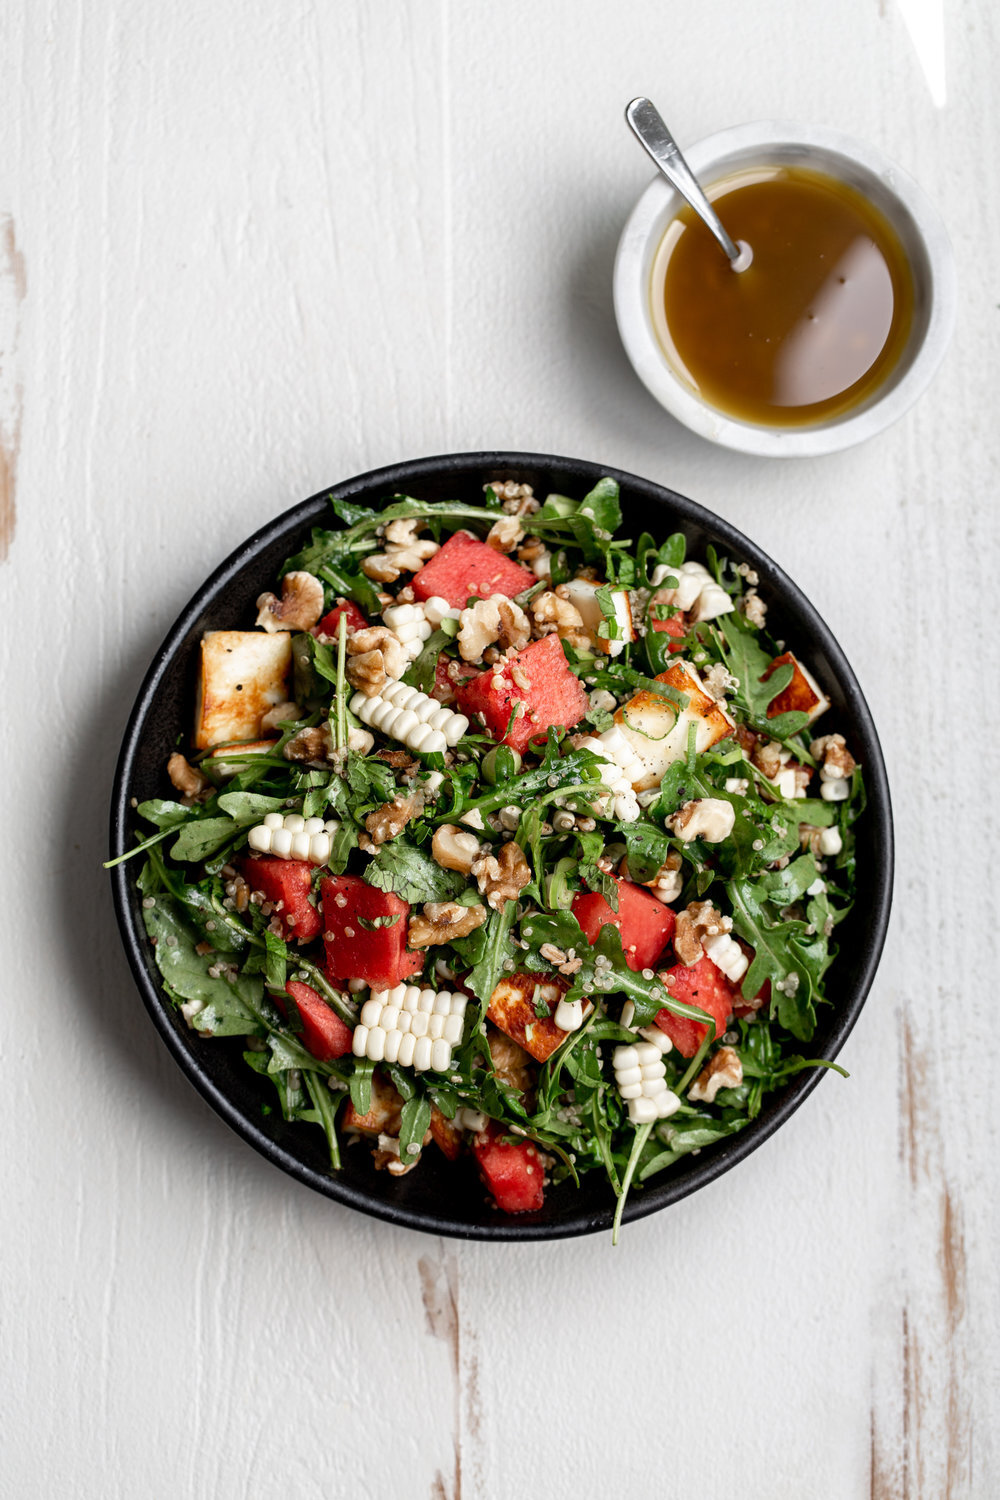 Watermelon Salad with Grains and Grilled Halloumi Cheese